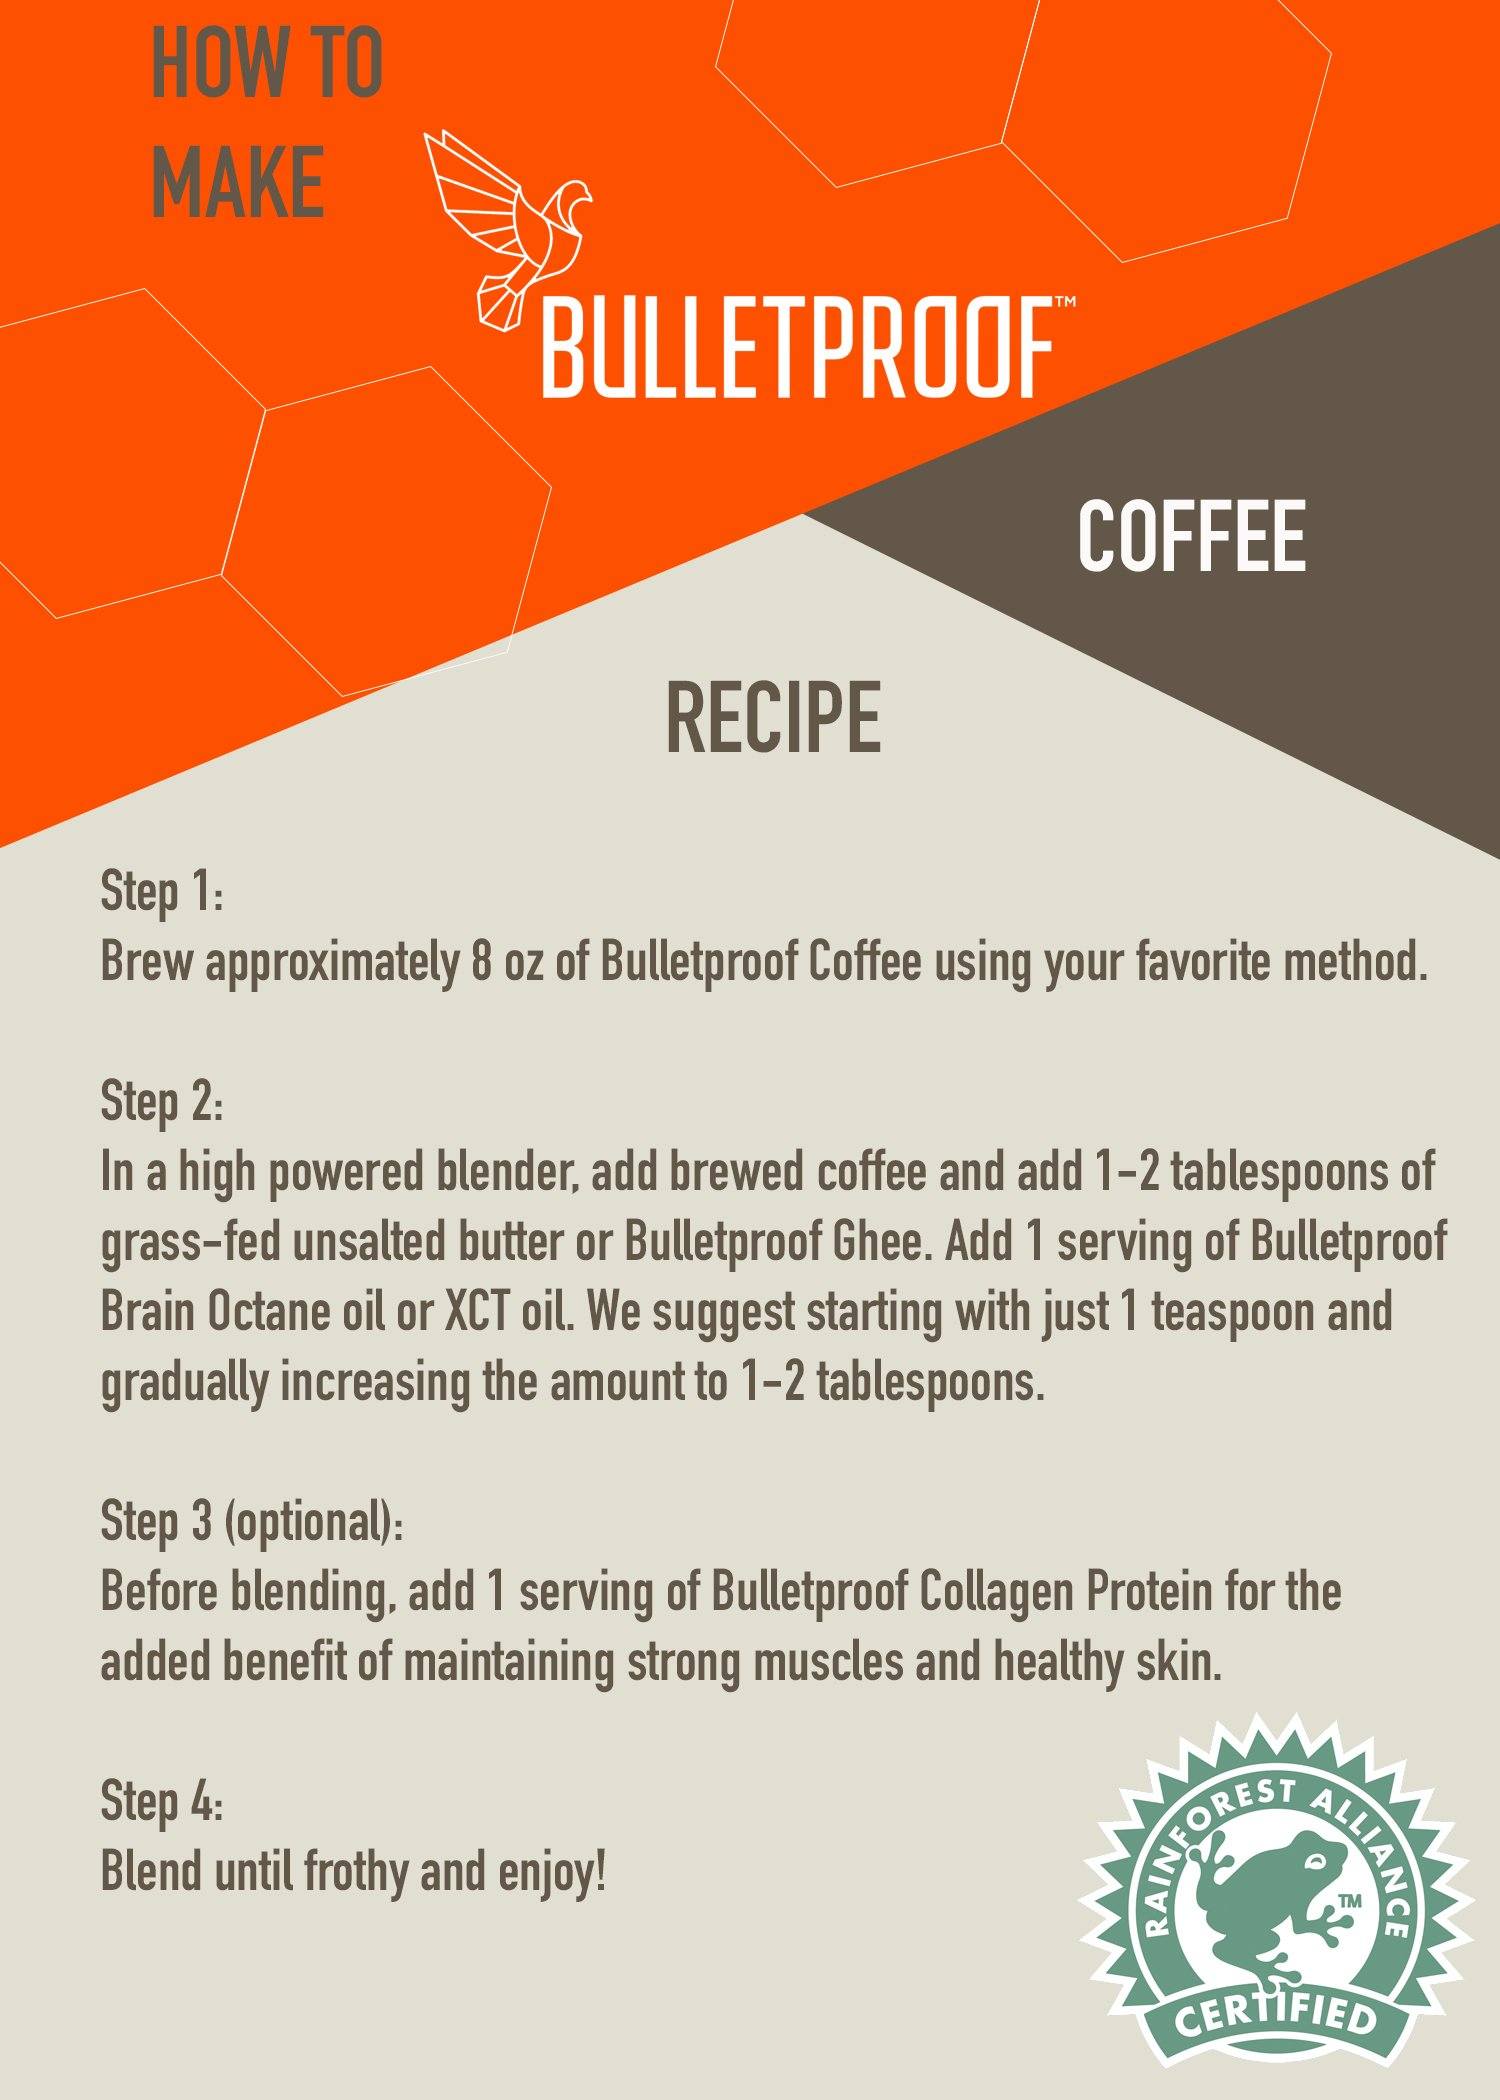 Bulletproof The Original Ground Coffee, Upgraded Coffee Upgrades Your Day (12 Ounces) by Bulletproof (Image #3)